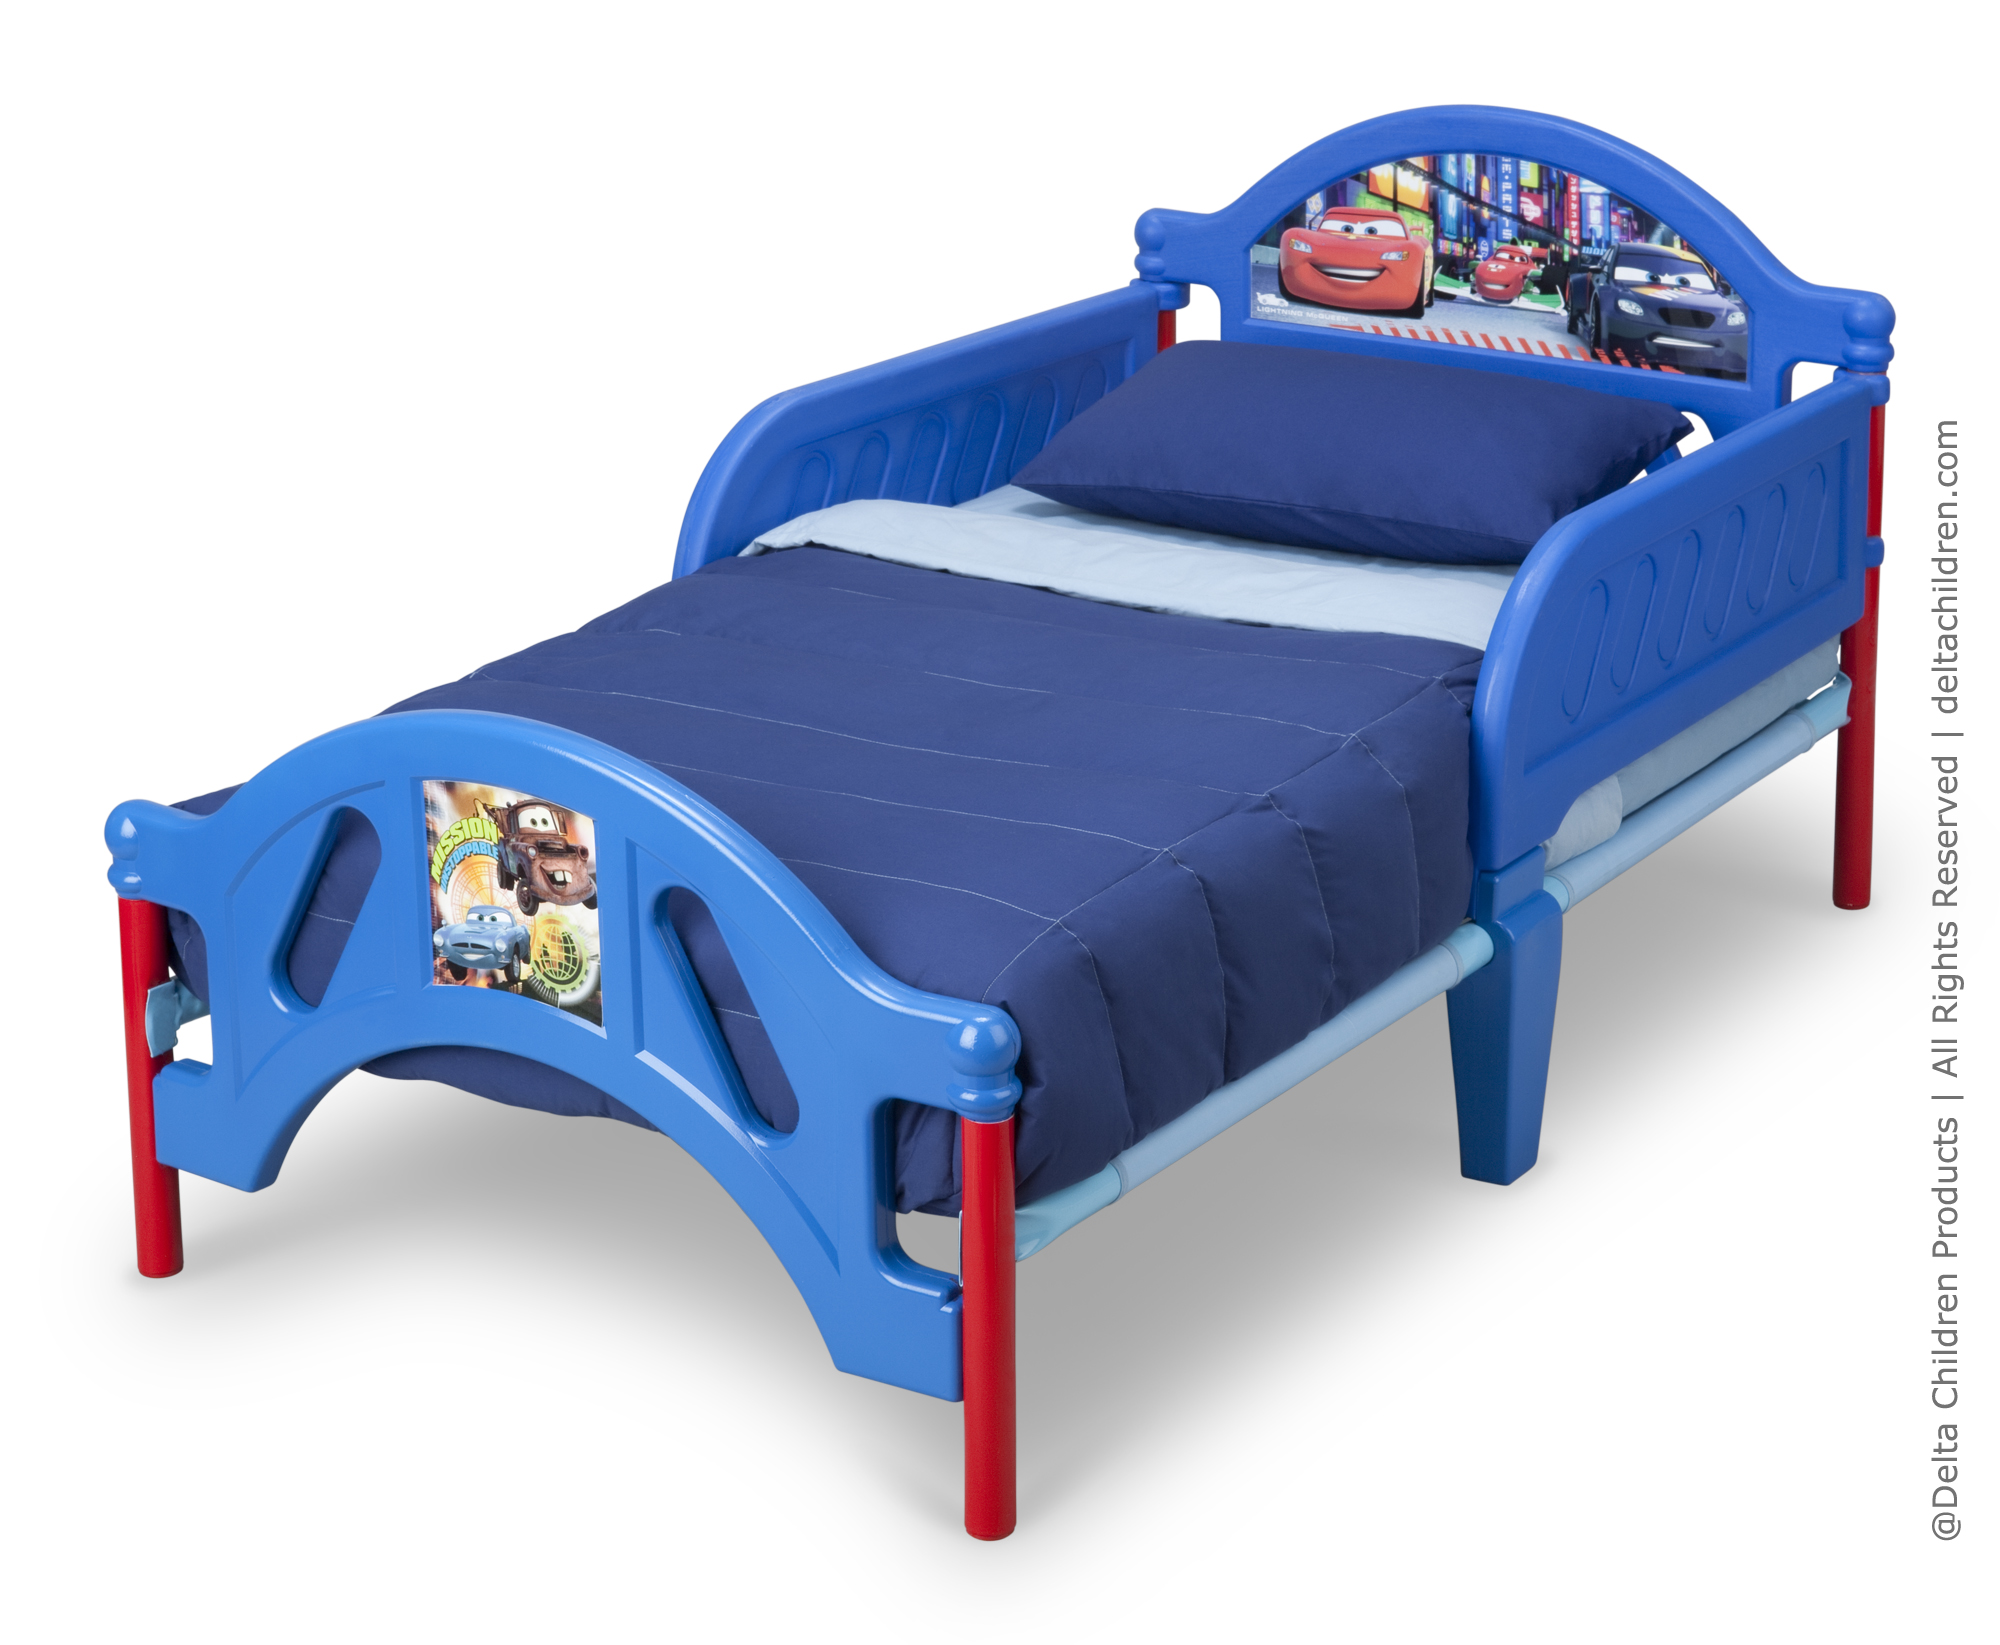 delta cars toddler bed instructions photo - 4